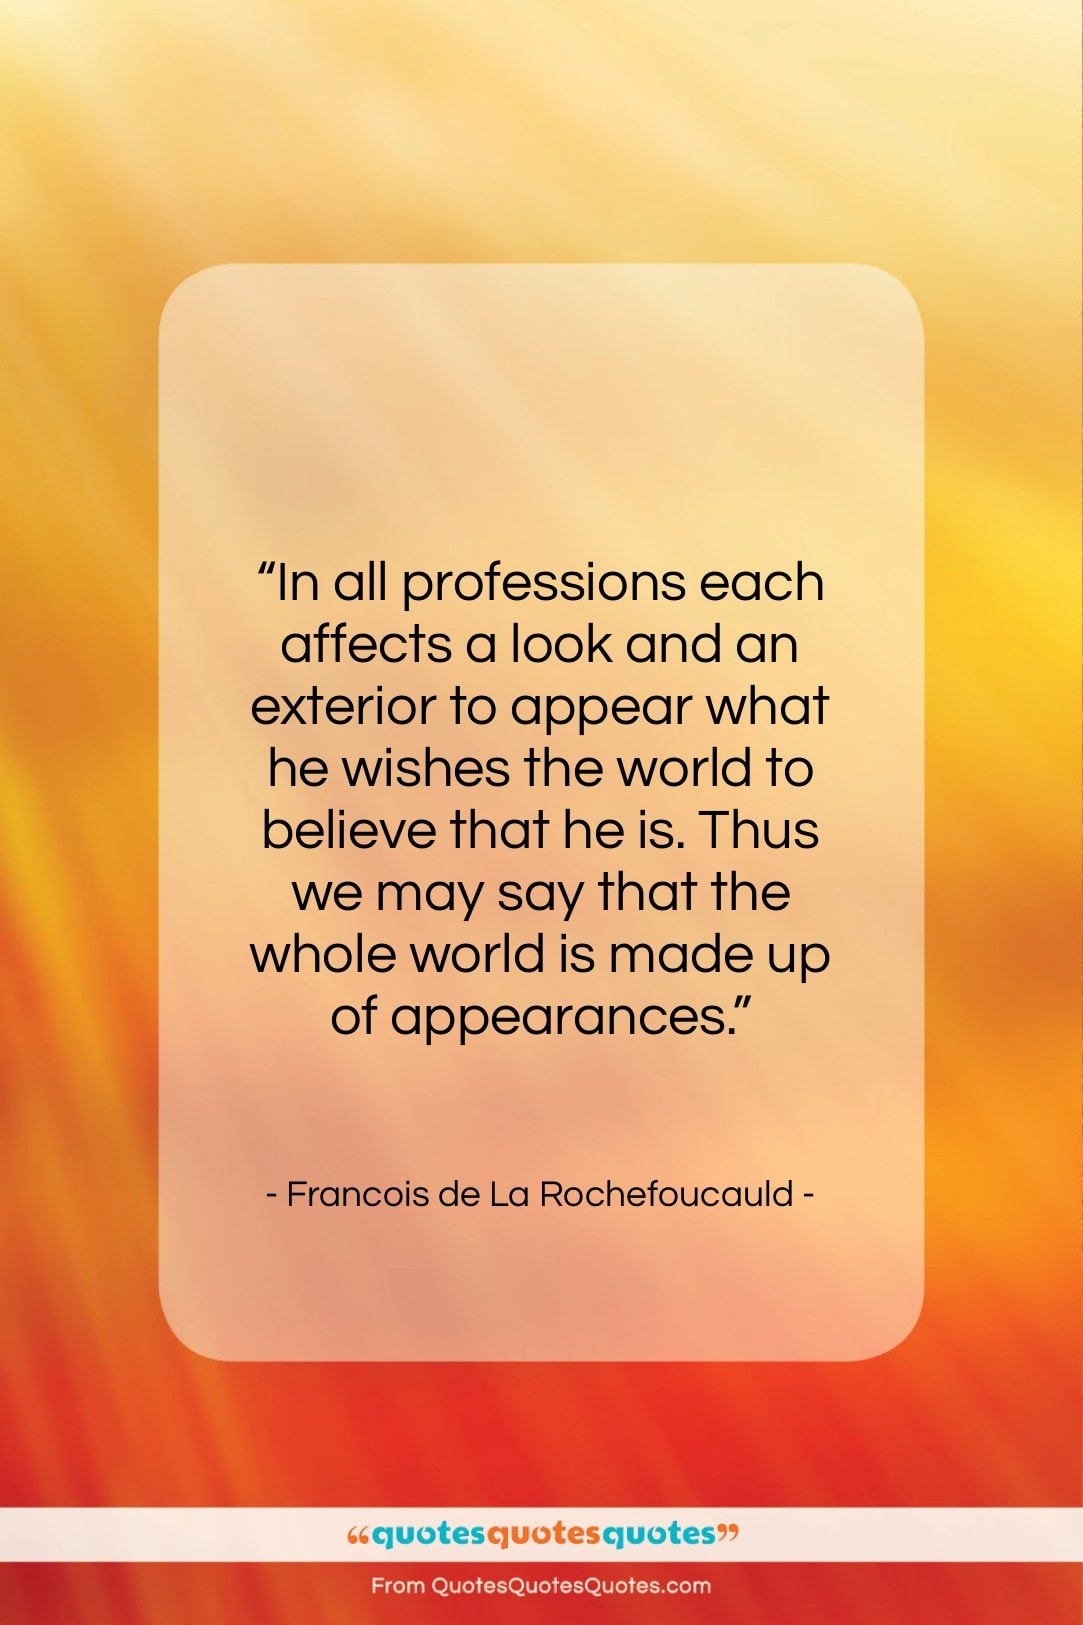 """Francois de La Rochefoucauld quote: """"In all professions each affects a look…""""- at QuotesQuotesQuotes.com"""